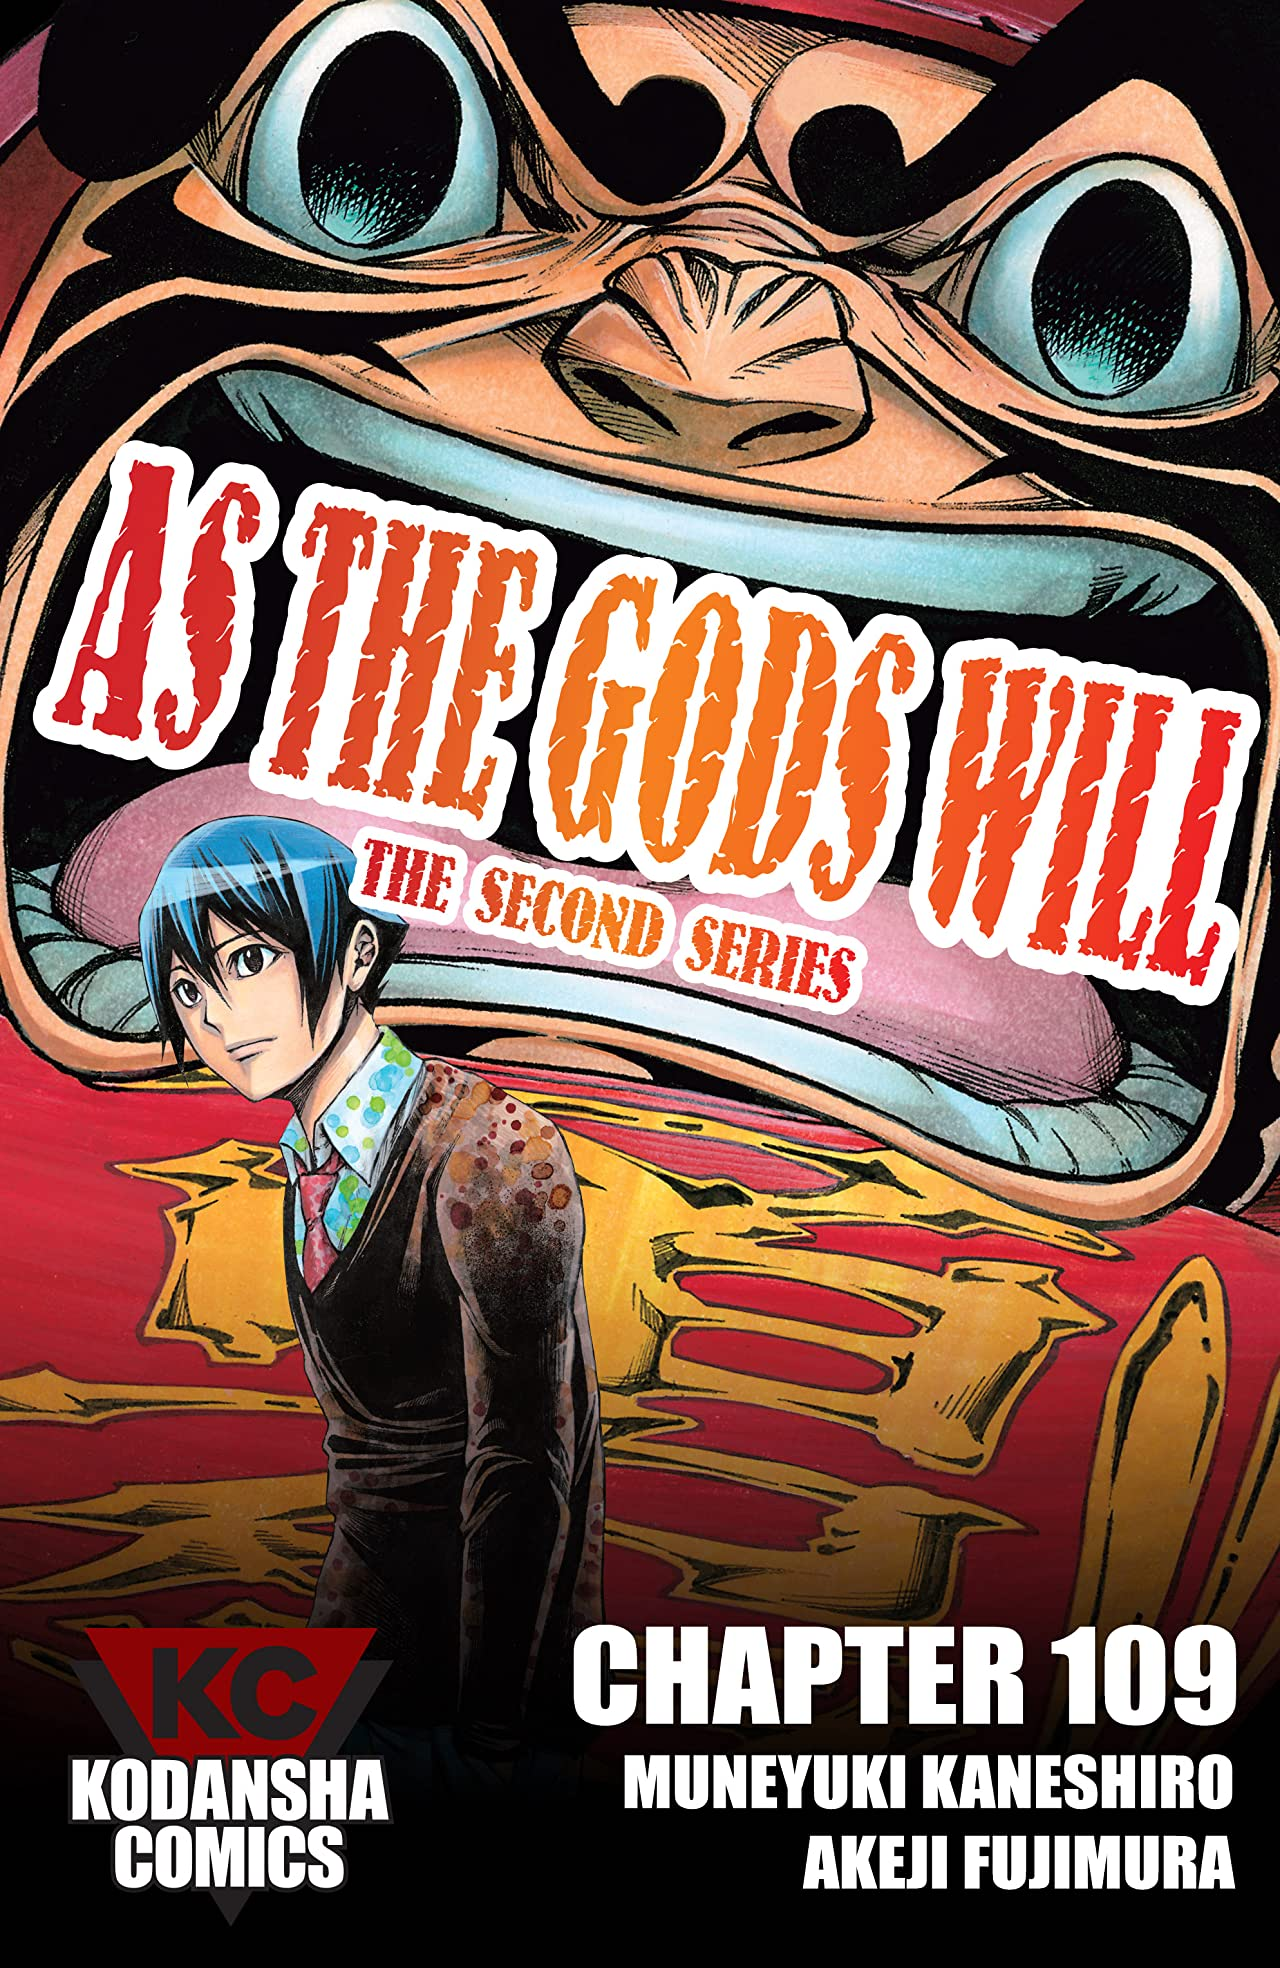 As The Gods Will: The Second Series #109